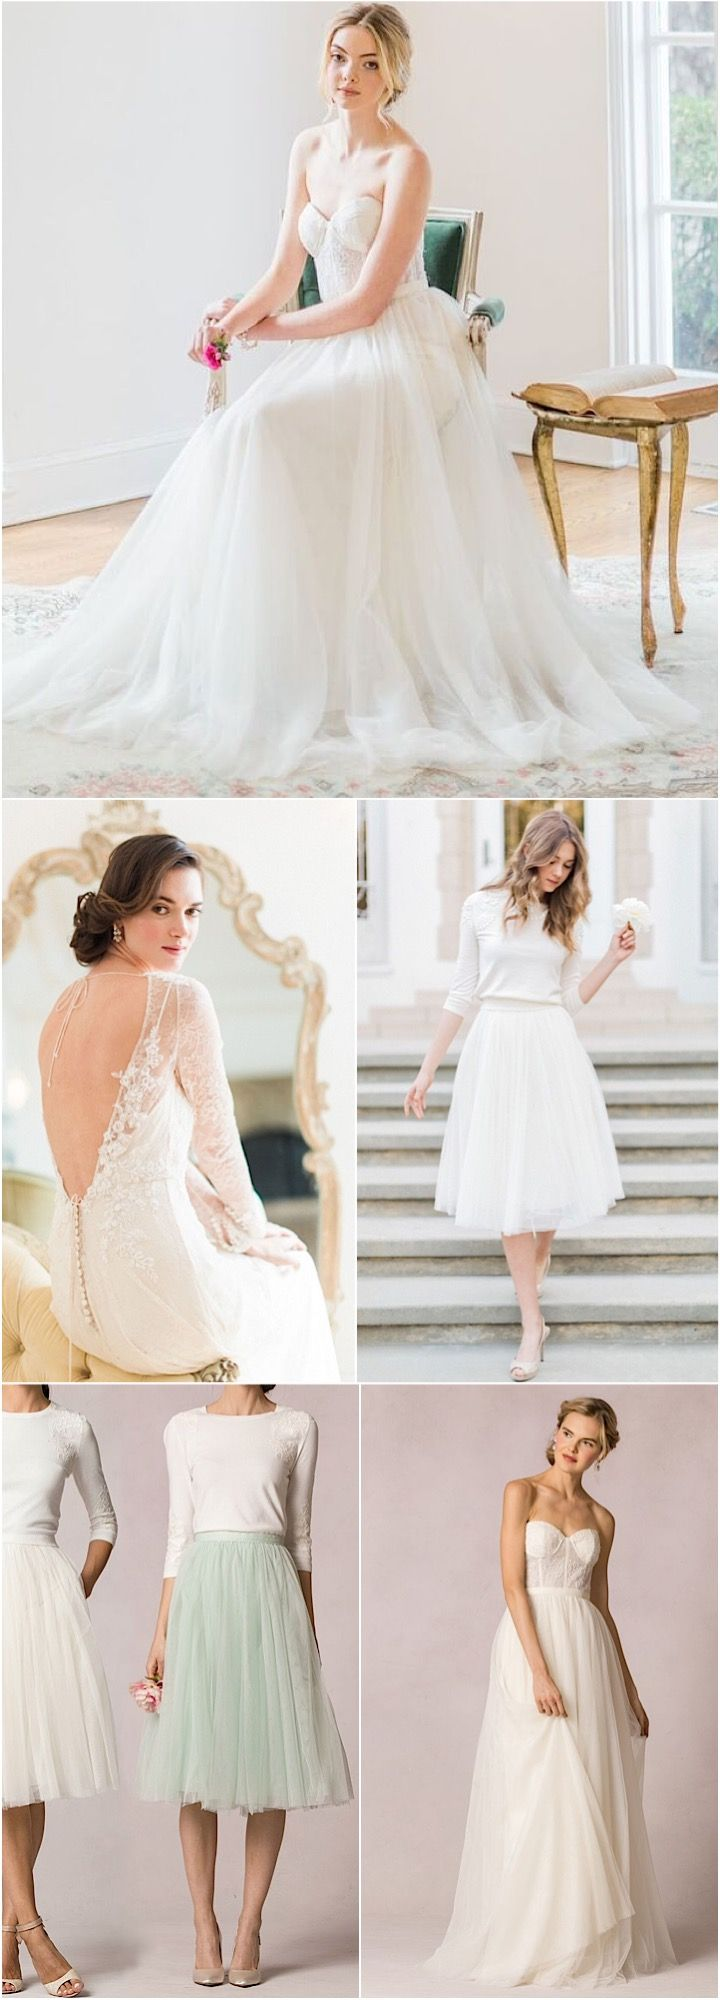 Gorgeous Jenny Yoo wedding gowns and bridesmaid dresses